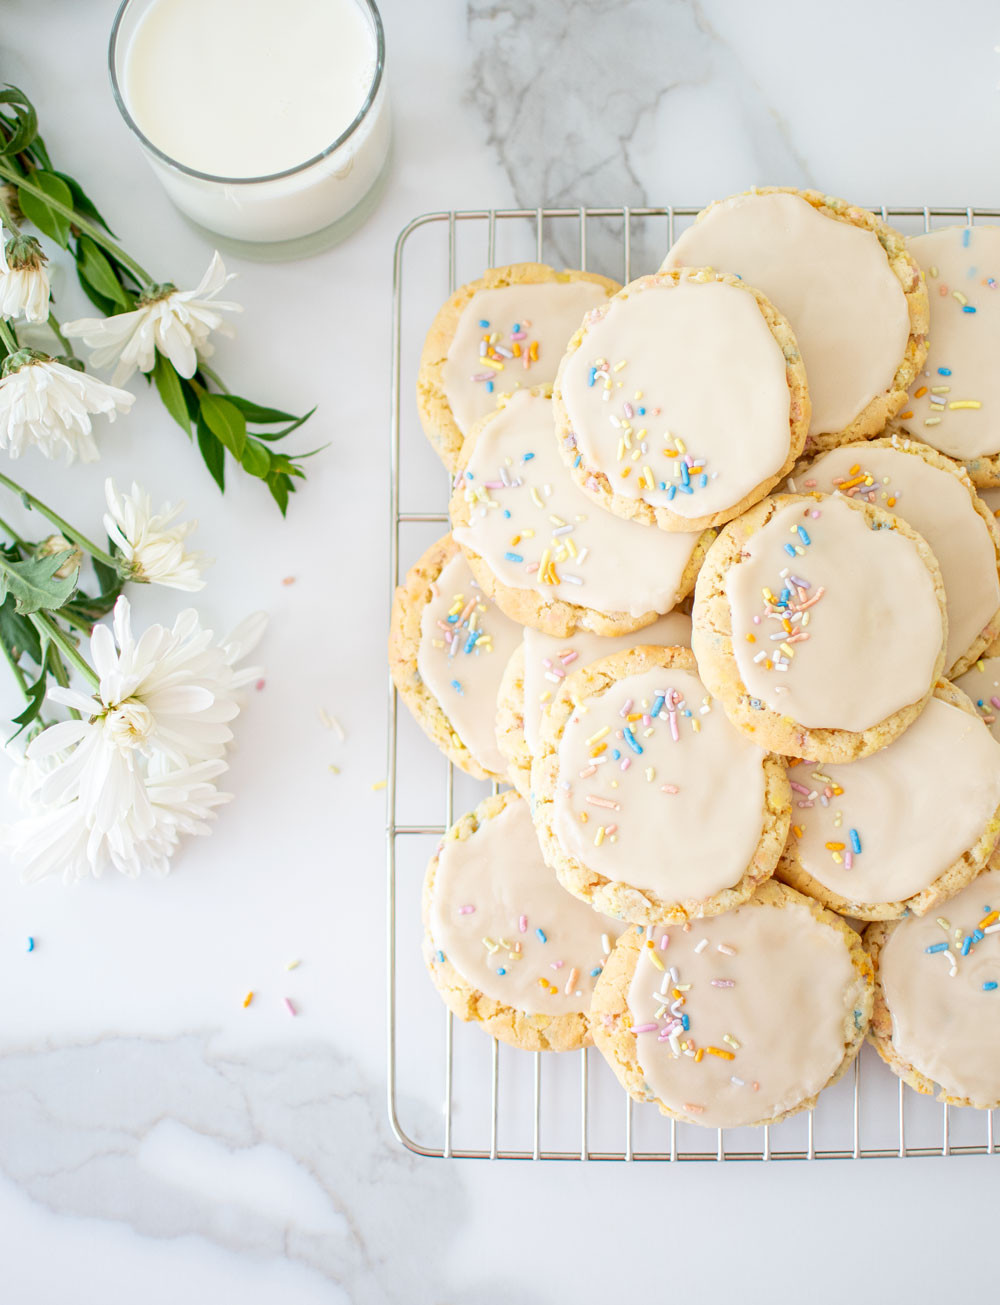 Easy and delicious soft and chewy Funfetti Sugar Cookie recipe with icing. These funfetti cookies use naturally colored sprinkles with no artificial colors. Soft and chewy cookies topped with a sweet icing and more rainbow sprinkles for the perfect funfetti cookies recipe #organiccookies #rainbowsprinkles #funfetti #funfetticookies #softandchewycookies #icingcookies